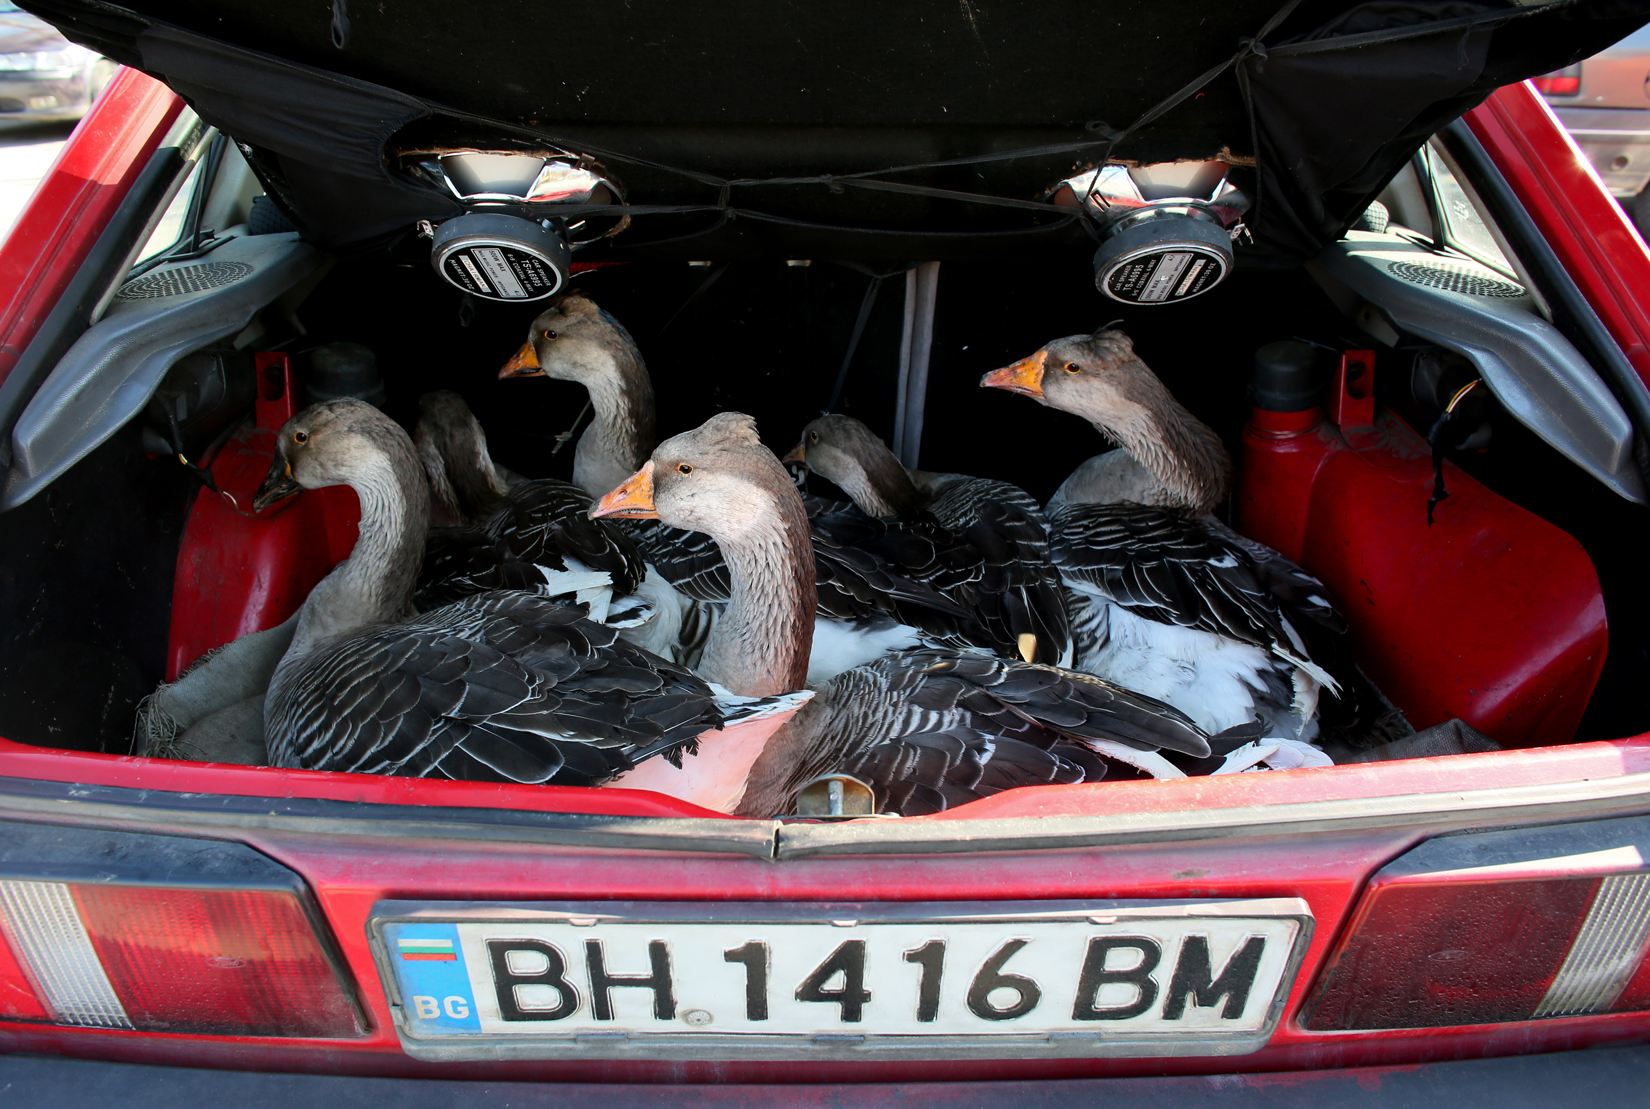 A woman sells geese from the trunk of her car, at an outdoor market in Vidin, Bulgaria on October 18th, 2014. Many Bulgarians sell personal belongings, fruit and vegetables grown at home, or resell goods as a supplement to their primary earnings, now that entrepreneurship is allowed in a post-Communism political environment.This photo is from a project that aims to gauge the effects of democracy in the former Soviet satellite nation Bulgaria, two and a half decades after the fall of the Berlin Wall. The story of democracy in Bulgaria at age 25 is a cautionary tale about transplanting one-size-fits-all Western values to a nation still undergoing social and economic upheaval. Bulgaria is still one of the poorest, most corrupt nations in the European Union, its post-1989 hopes wilted by political instability, high crime rates and skyrocketing inflation. While Bulgarians can now freely vote and protest without much threat to their freedom, their new oppressor is corruption - which is at a 15 year high, across political and civil sectors alike. The ennui is so casually etched on the passerby's face that it becomes routine - one that fits in sadly well against a startling backdrop of rotting architecture, joblessness, and a vast population decline. Despite what democracy has changed in Bulgaria, the daily struggles of its populace remain largely untouched, trapped in a post-communist time capsule.